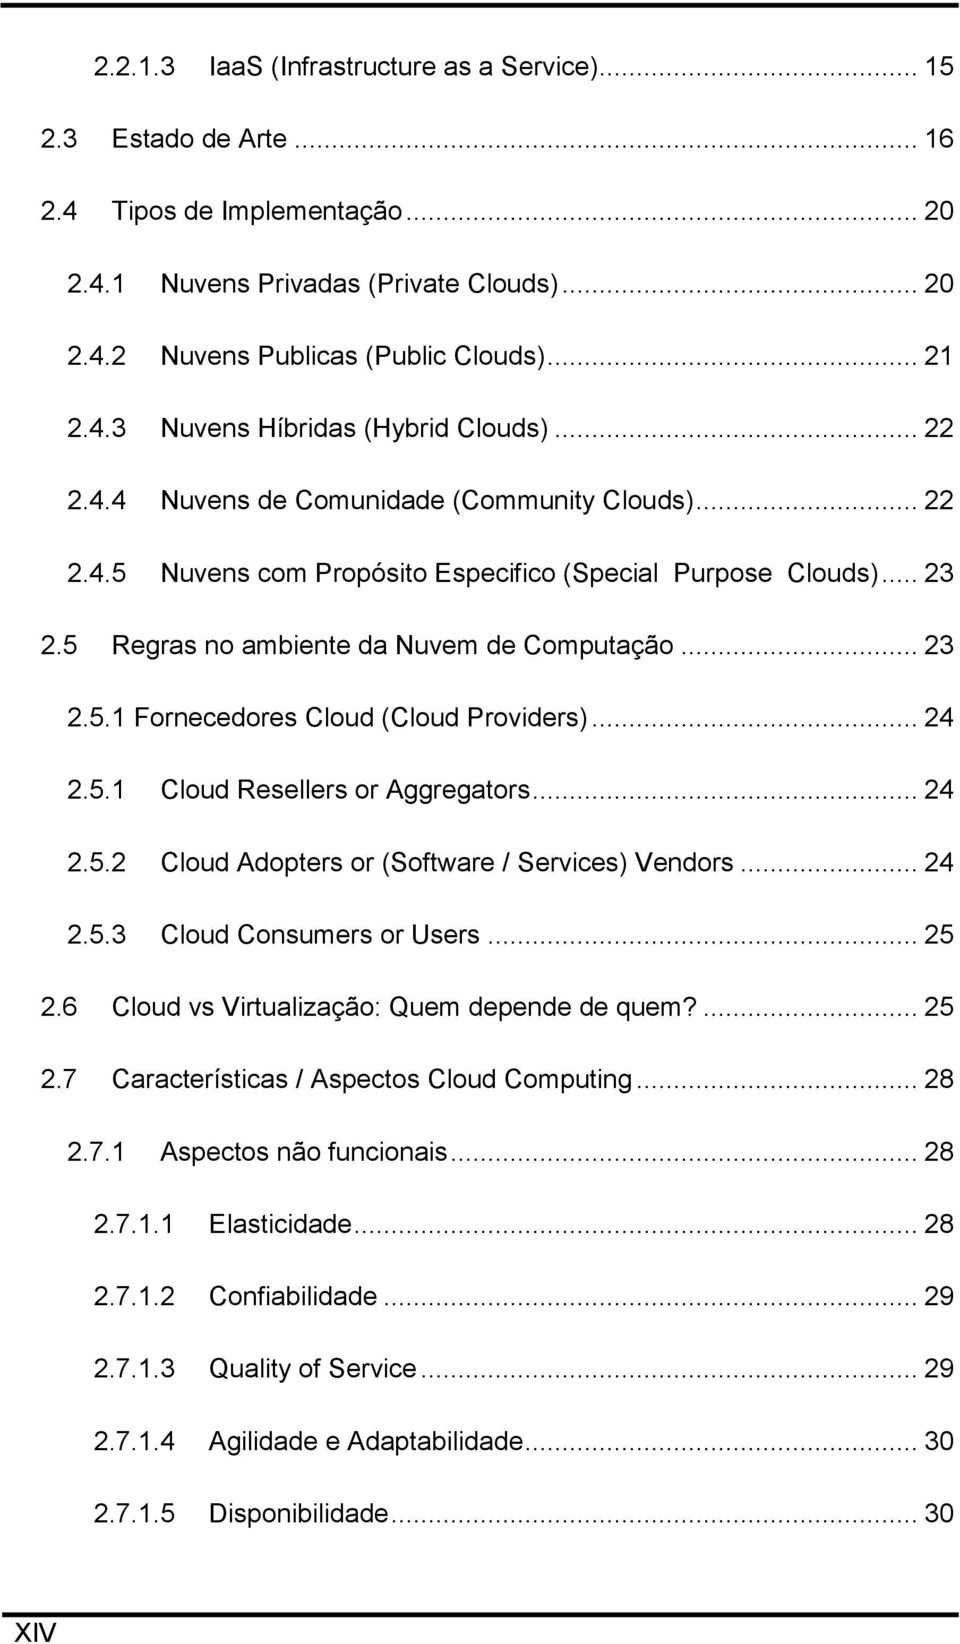 .. 24 2.5.1 Cloud Resellers or Aggregators... 24 2.5.2 Cloud Adopters or (Software / Services) Vendors... 24 2.5.3 Cloud Consumers or Users... 25 2.6 Cloud vs Virtualização: Quem depende de quem?